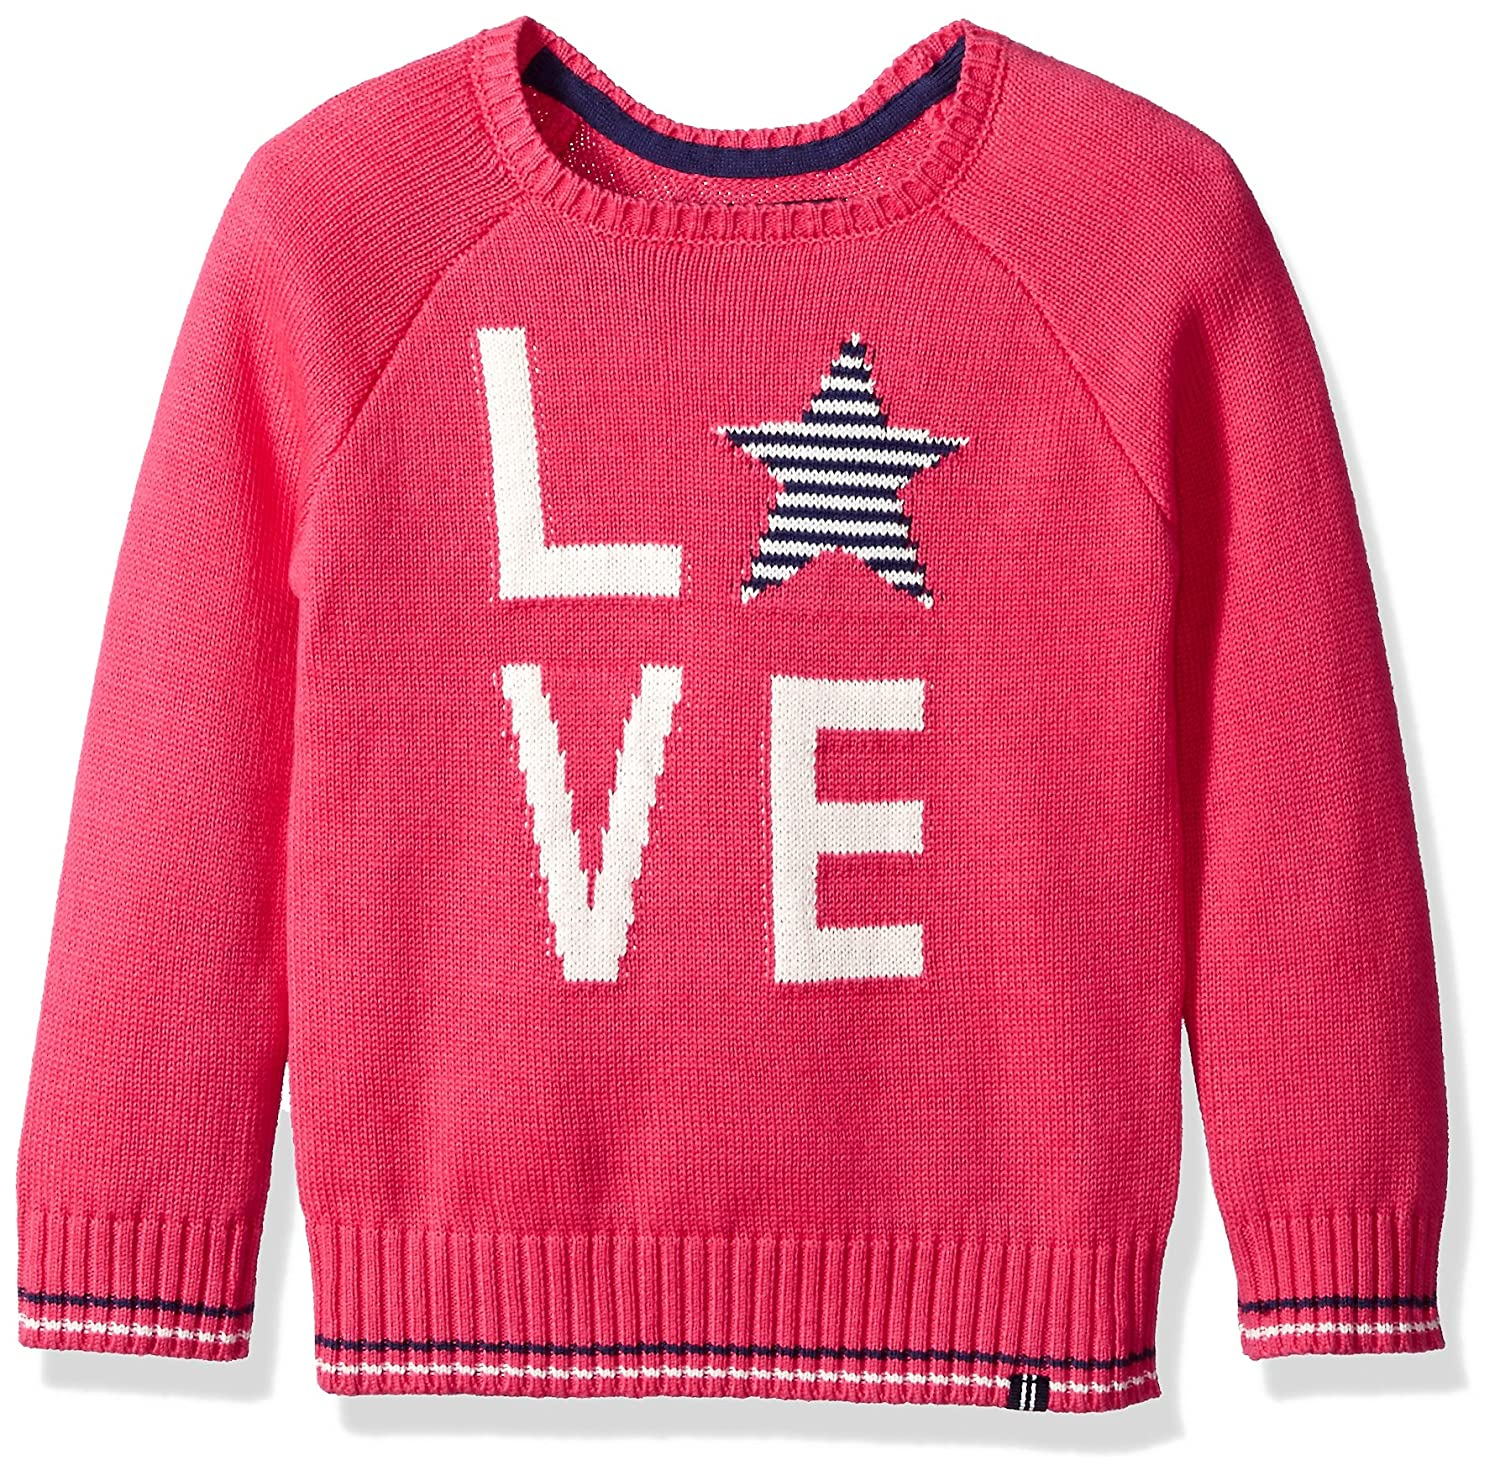 Nautica Girls Sherpa Pullover Sweater Bright Pink Love Medium (8/10) NDC0078Q